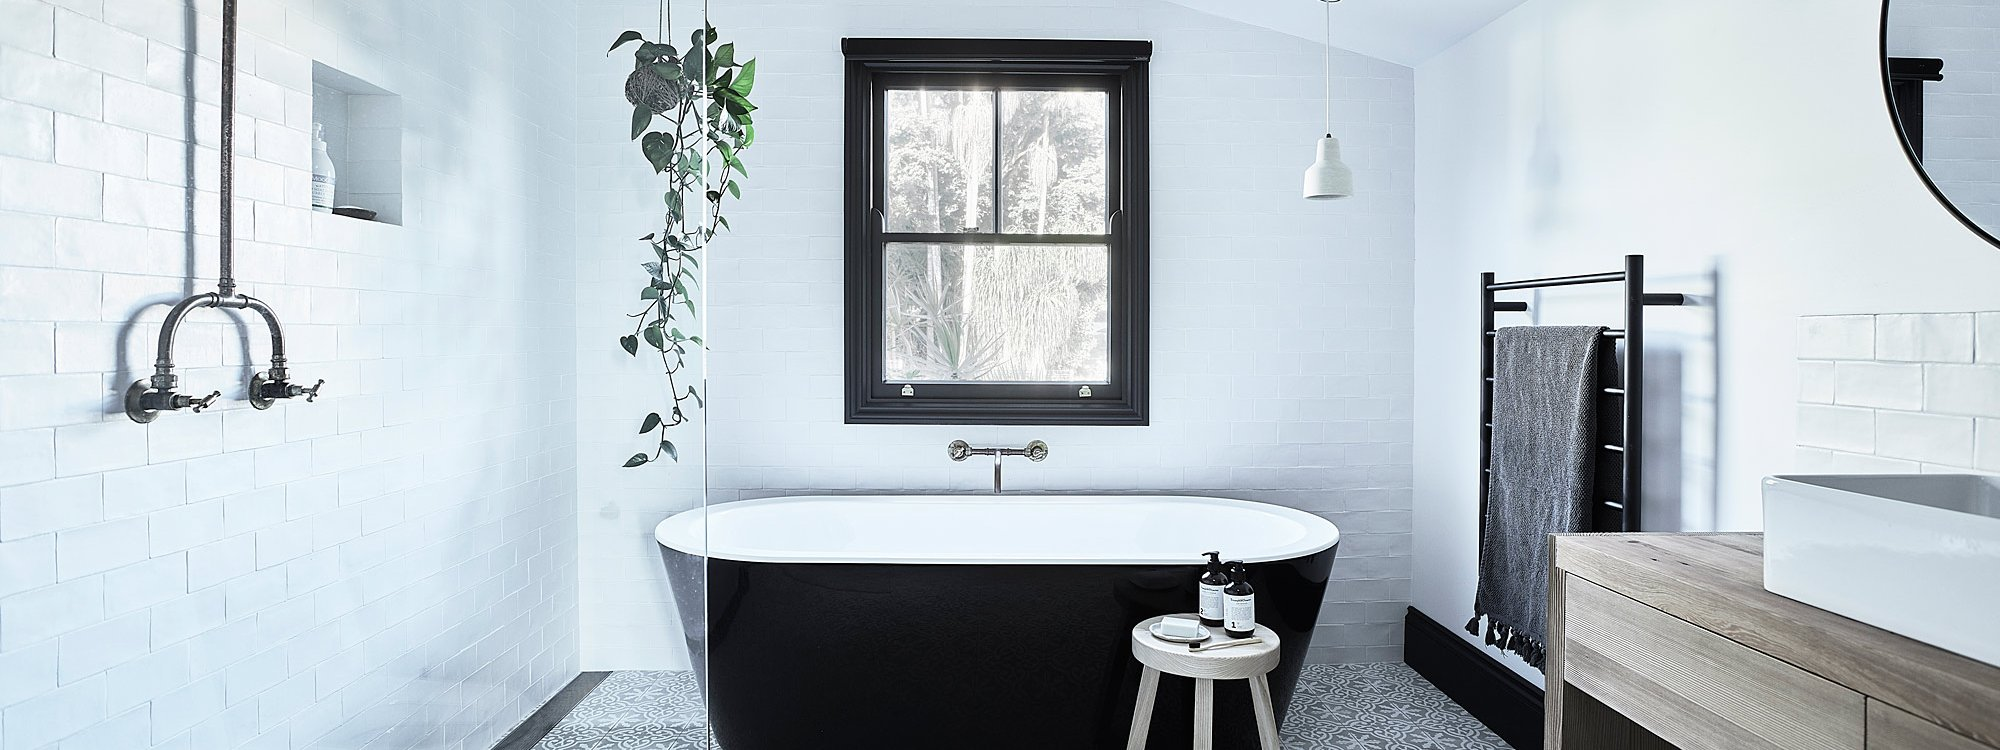 Bennys Cottage - Byron Bay - Real Living Shoot Bathroom with Bath b